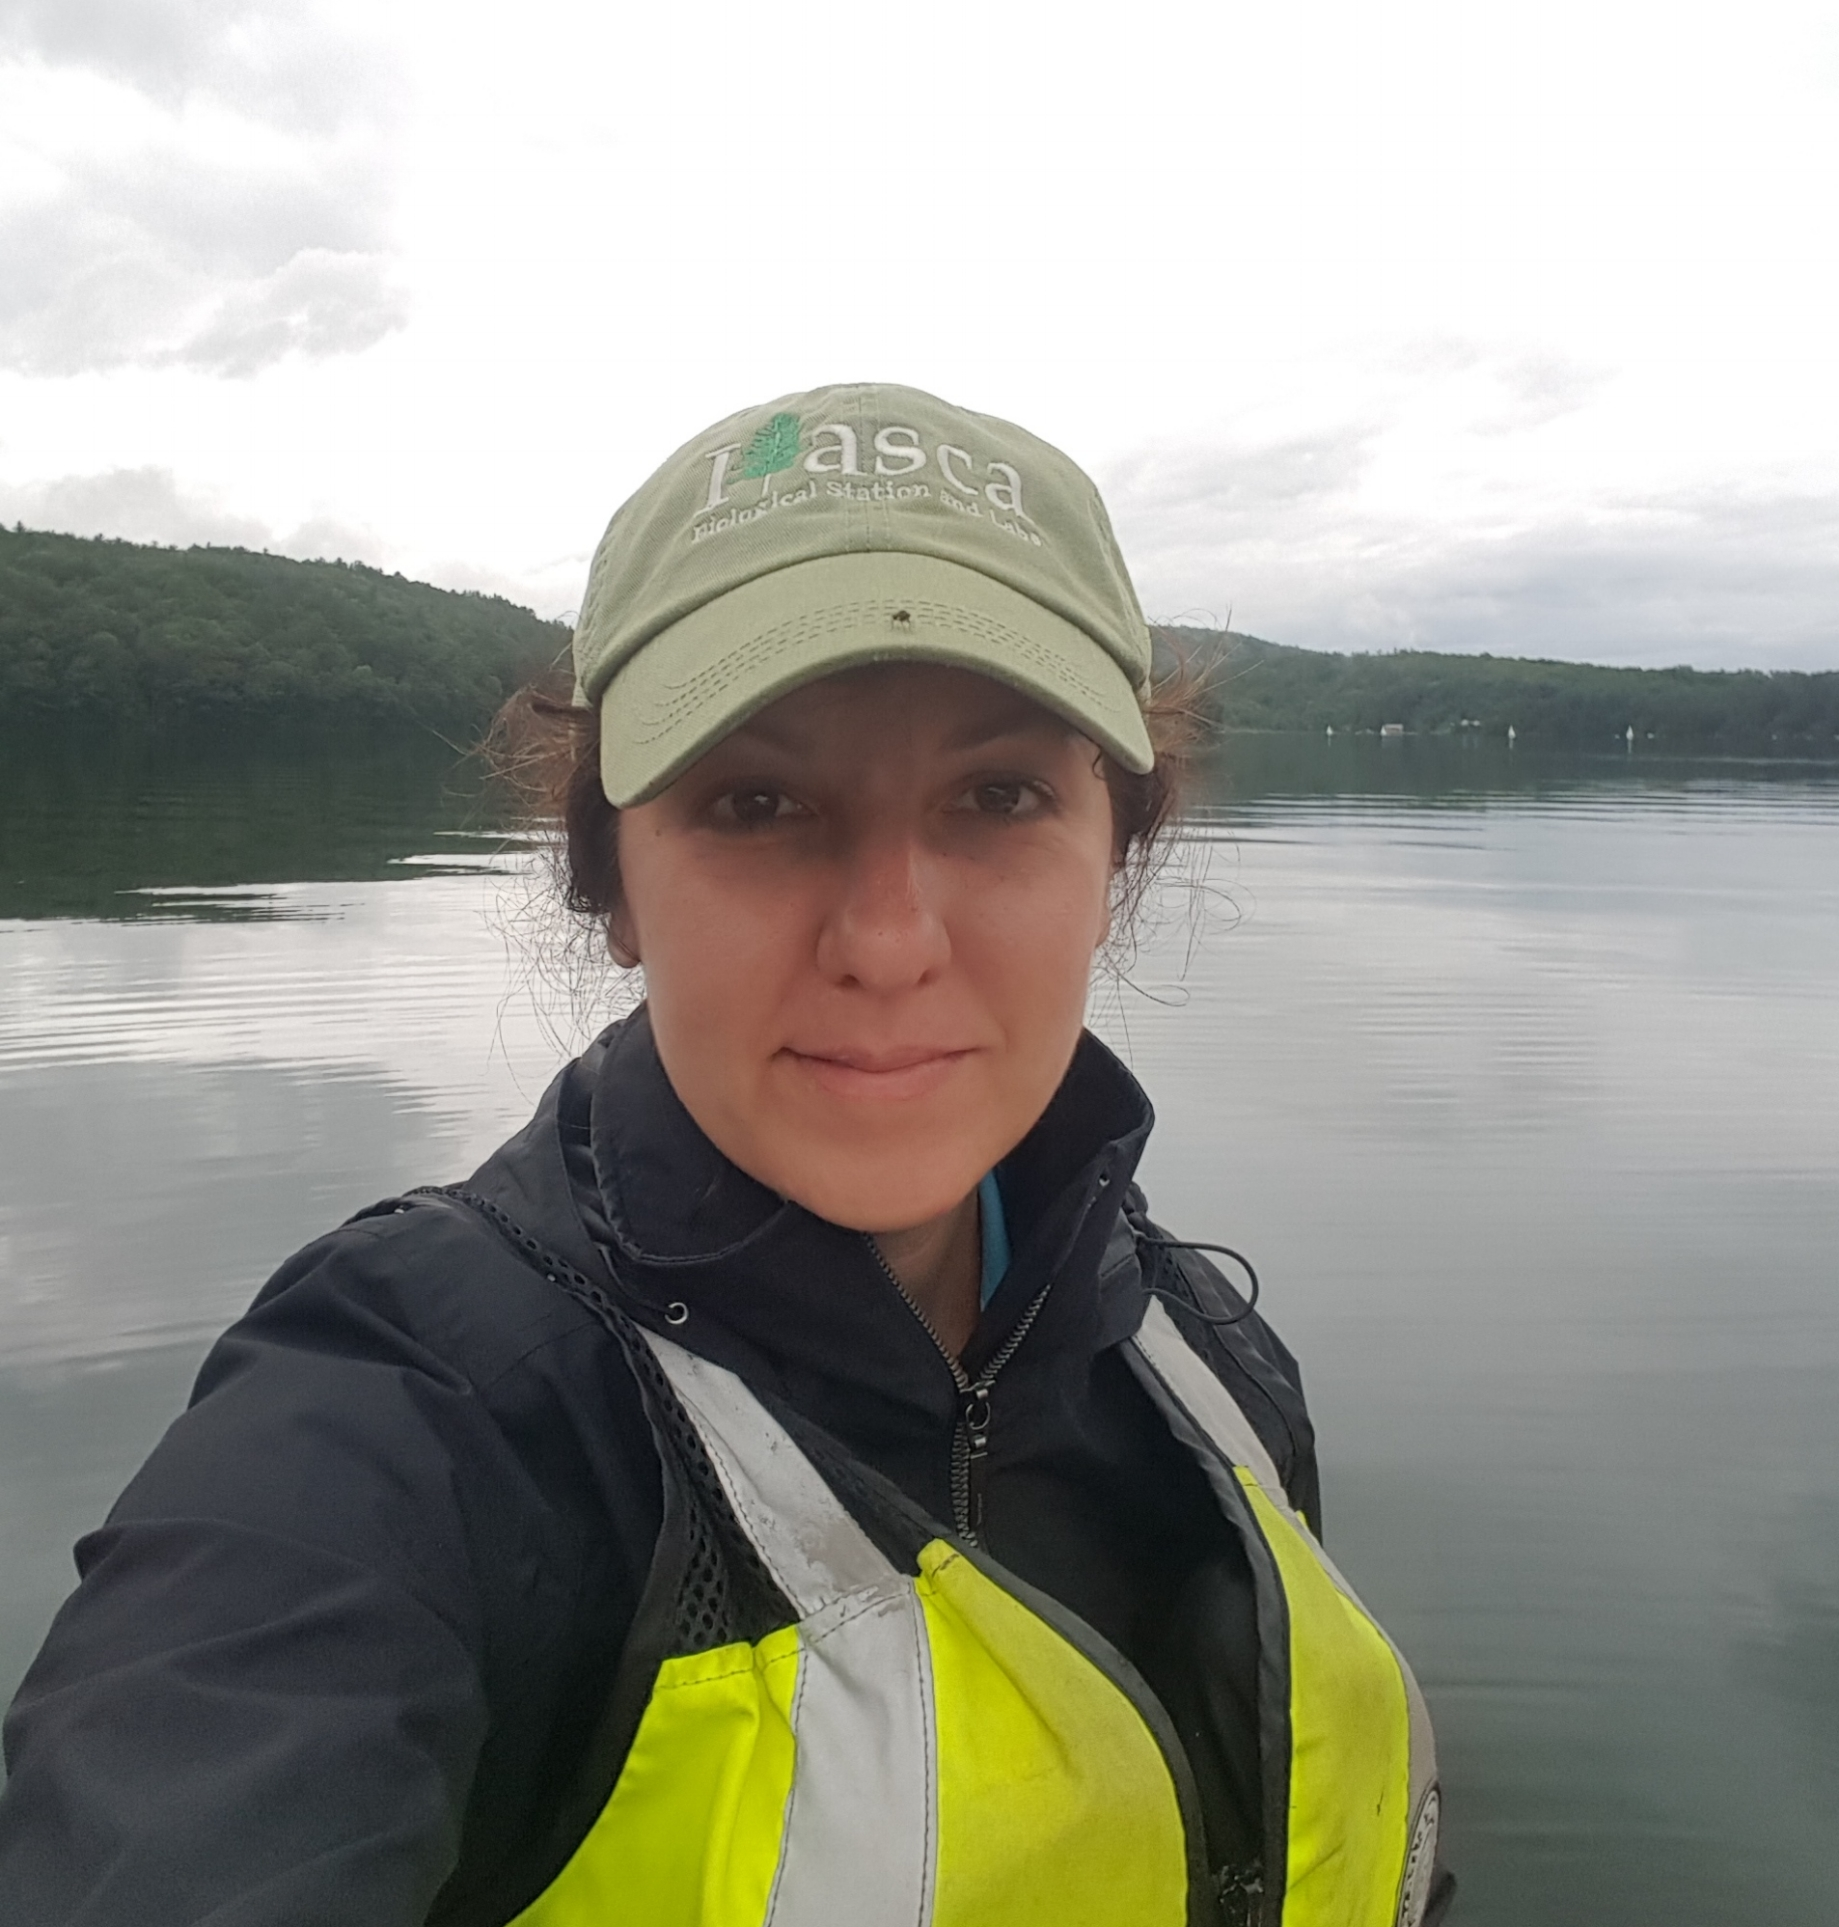 Mindy Morales-Williams - Assistant Professor, Rubenstein Schoolana.morales@uvm.eduC.V.I'm a limnologist specializing in phycology and biogeochemistry. My research interests include phytoplankton community ecology, cyanobacteria bloom dynamics, land-water linkages, and effects of eutrophication on carbon cycling in lake ecosystems. I investigate how fine scale physiological and ecological mechanisms feedback to drive ecosystem and landscape scale processes.